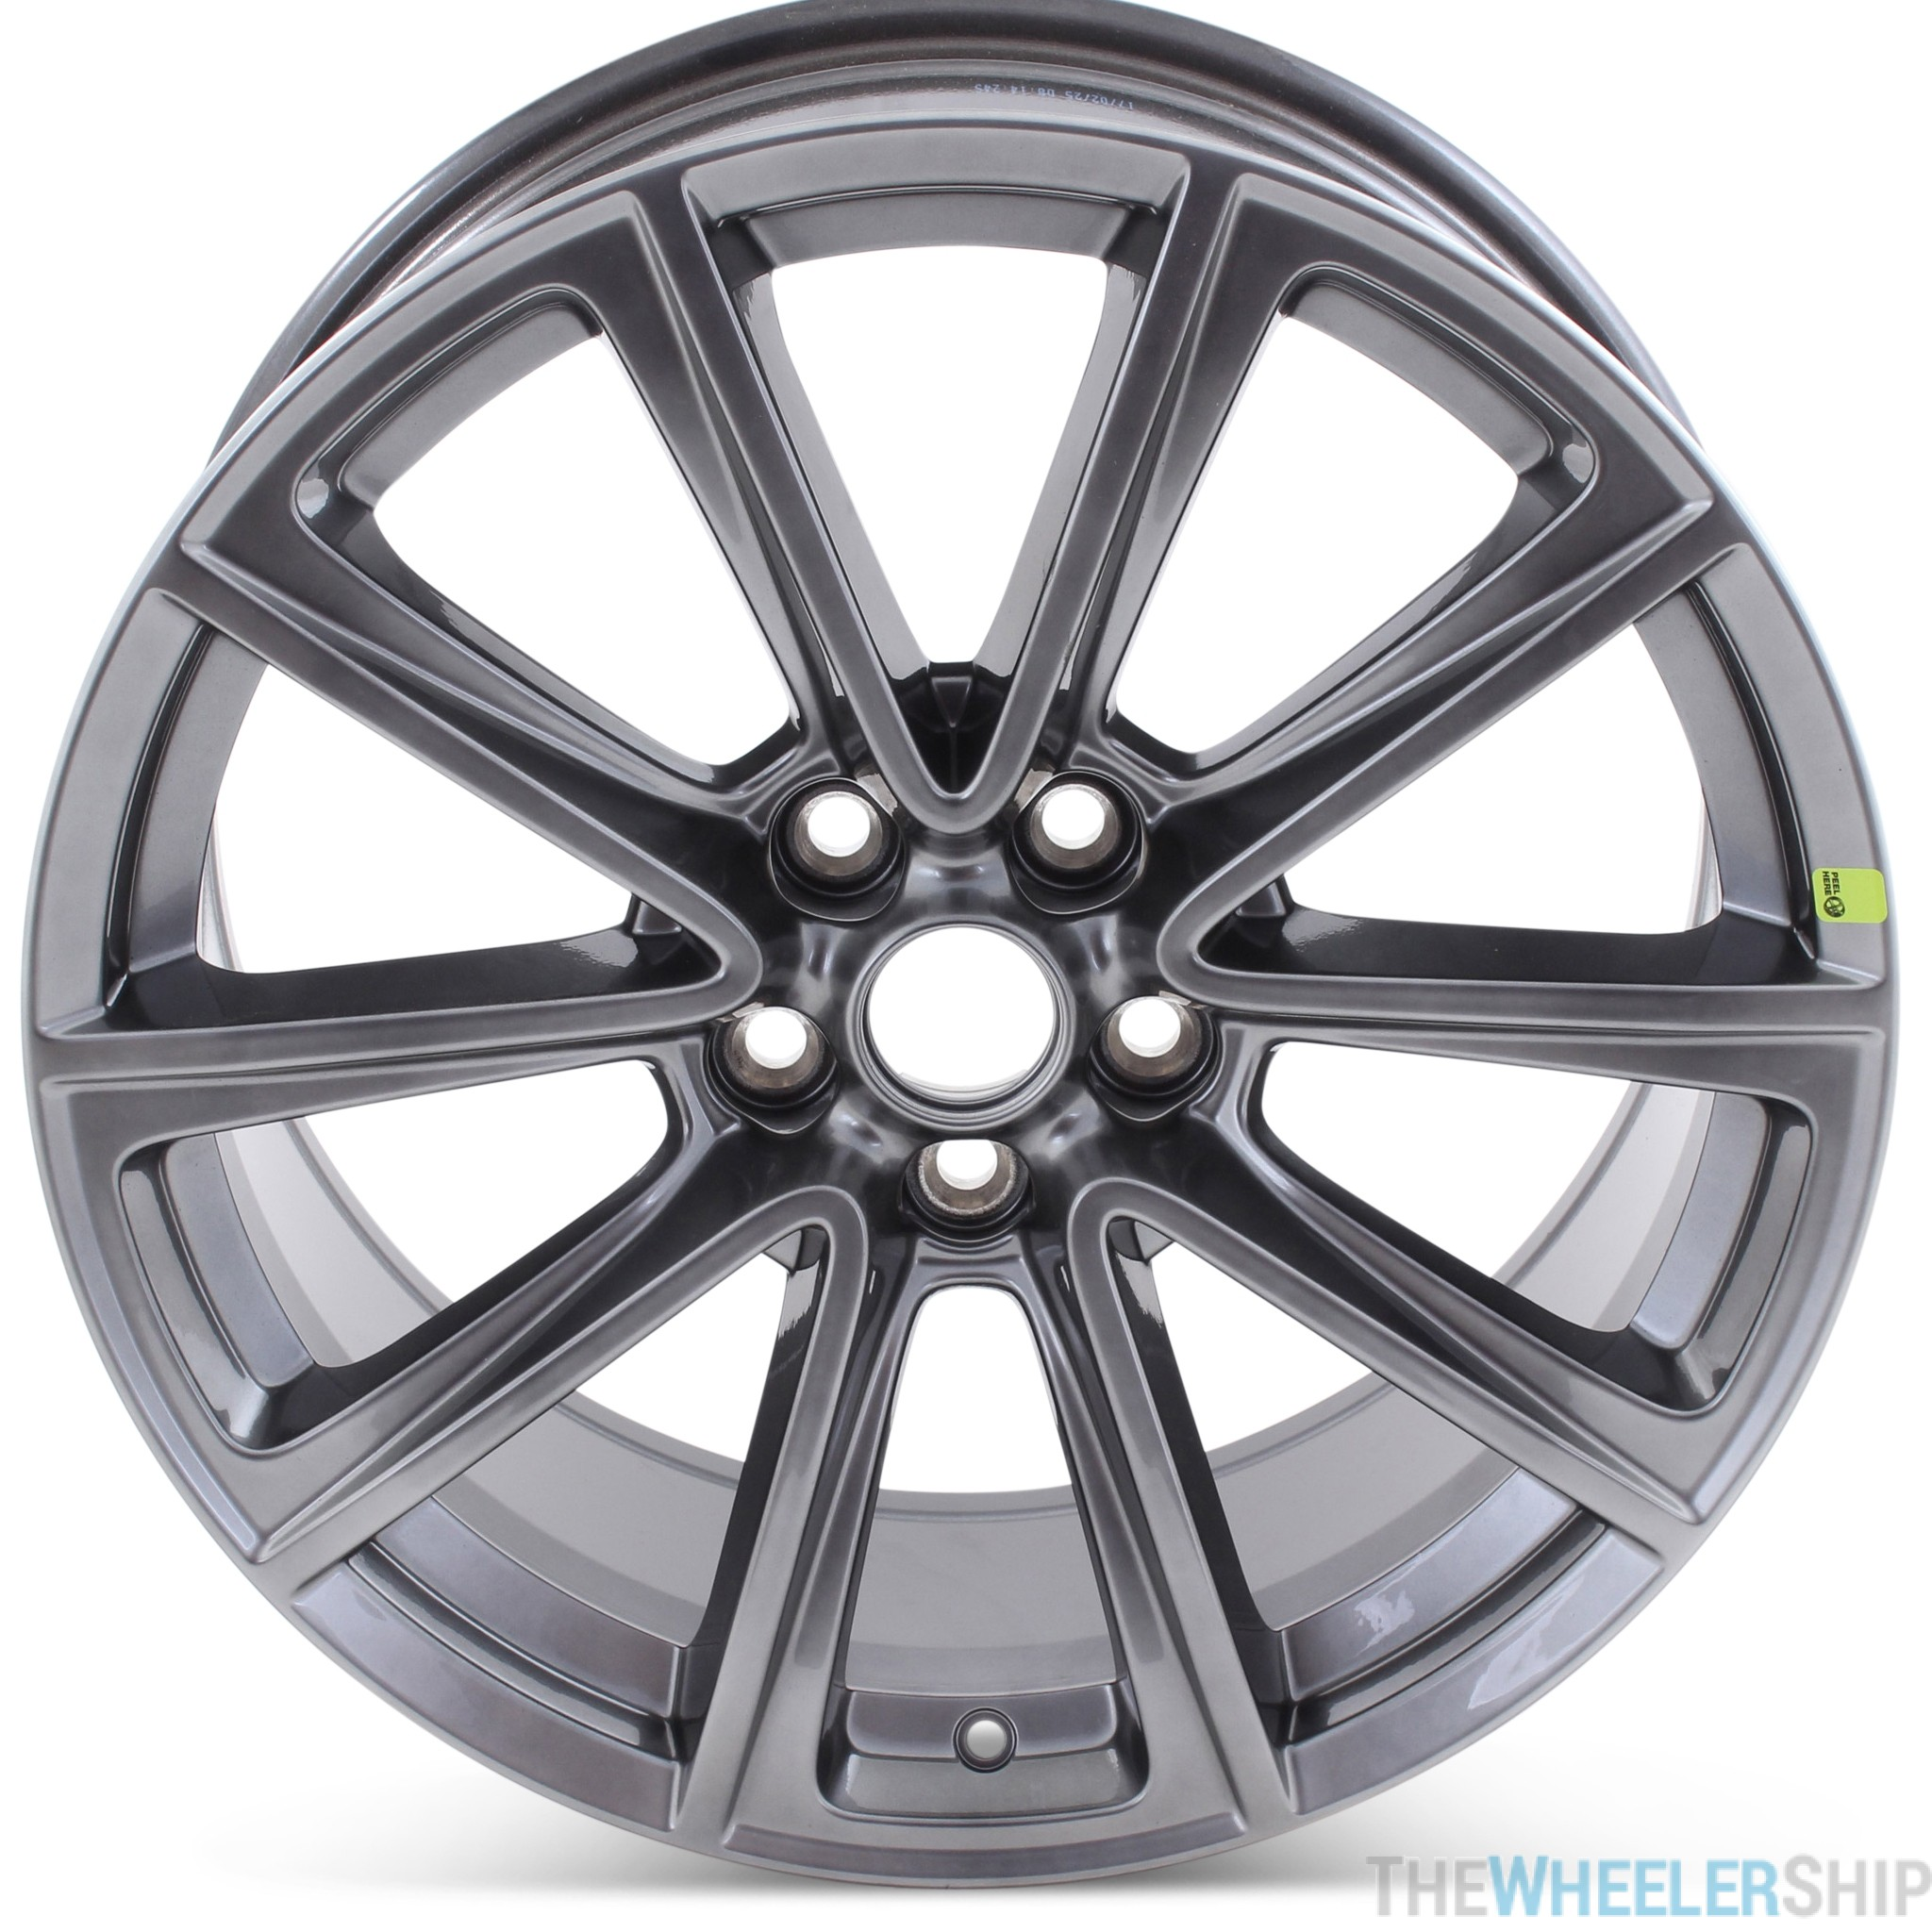 Brand New 19 X 8 5 Ford Mustang 2015 2016 2017 Factory Oem Wheel Hypersilver Rim 10031